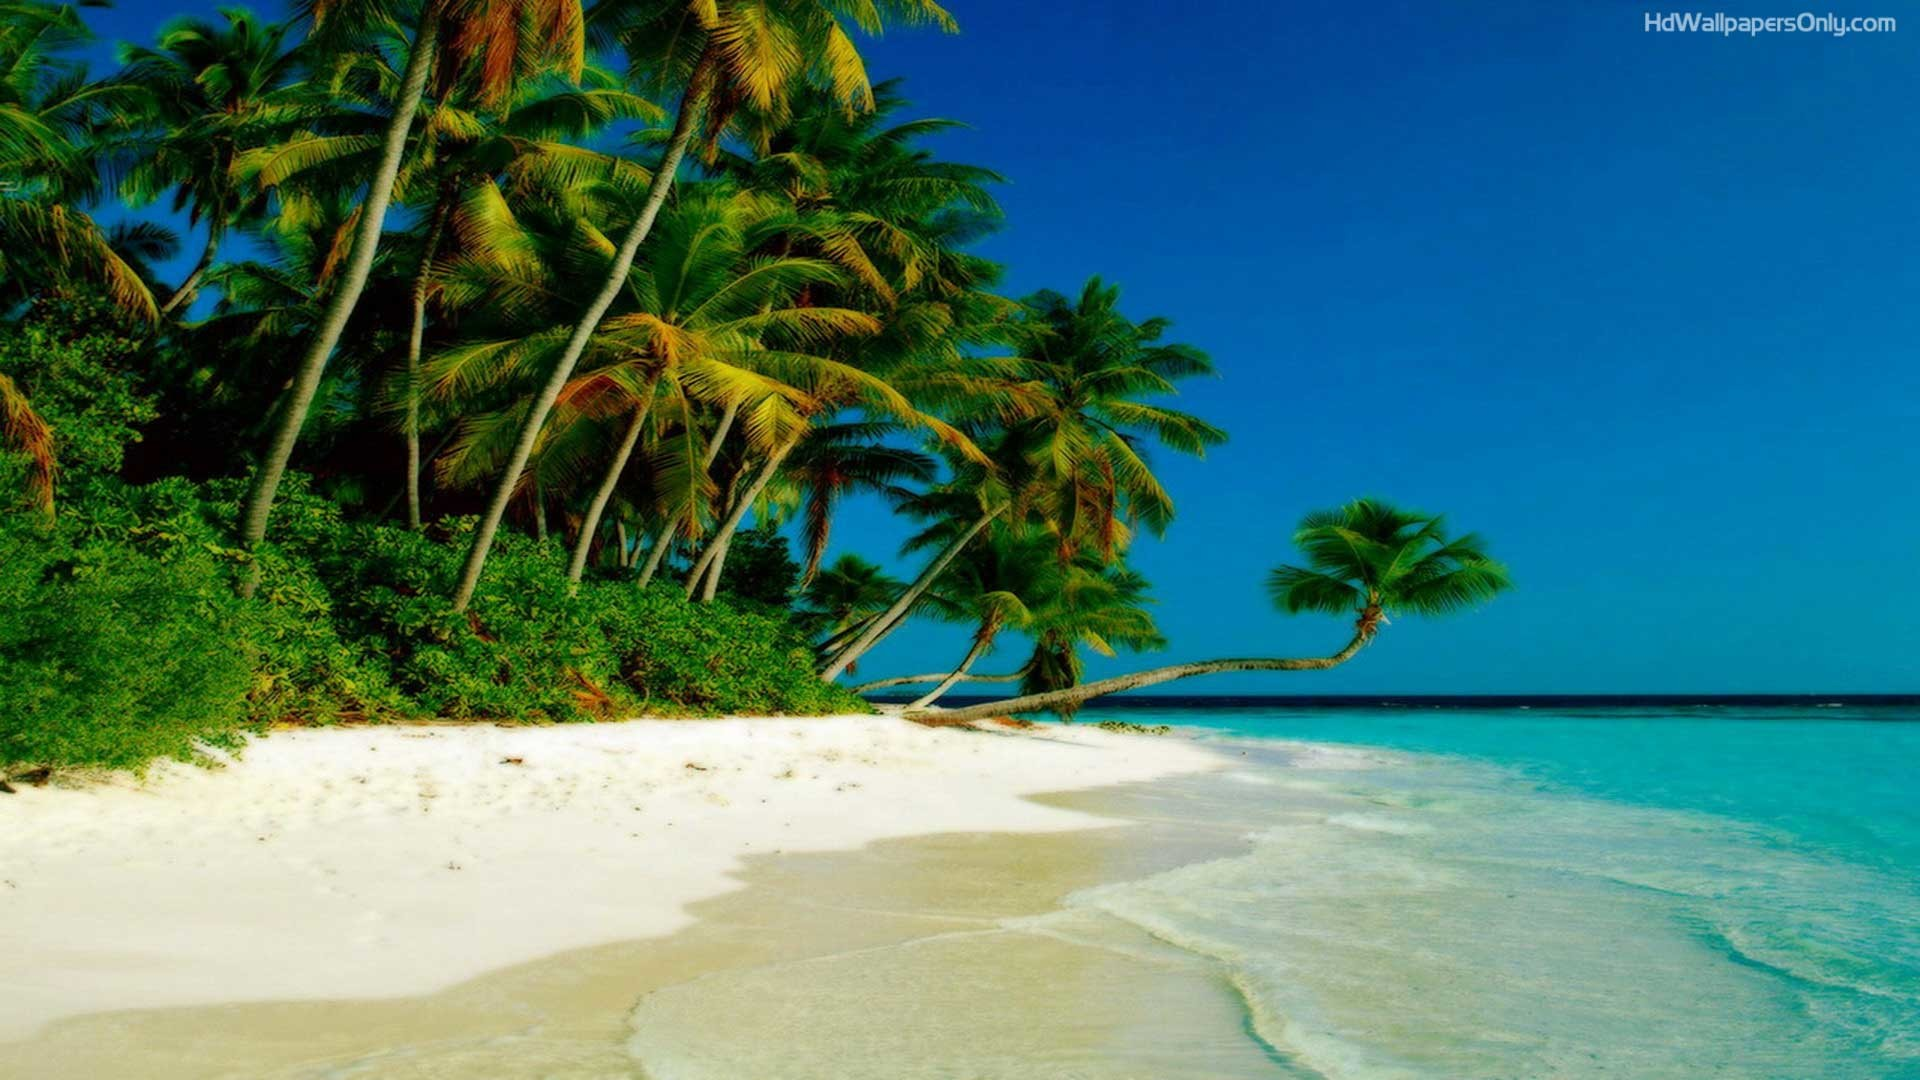 1920x1080 Collection of Beach Backgrounds, Beach HD Wallpapers Beach HD Wallpapers Wallpapers)